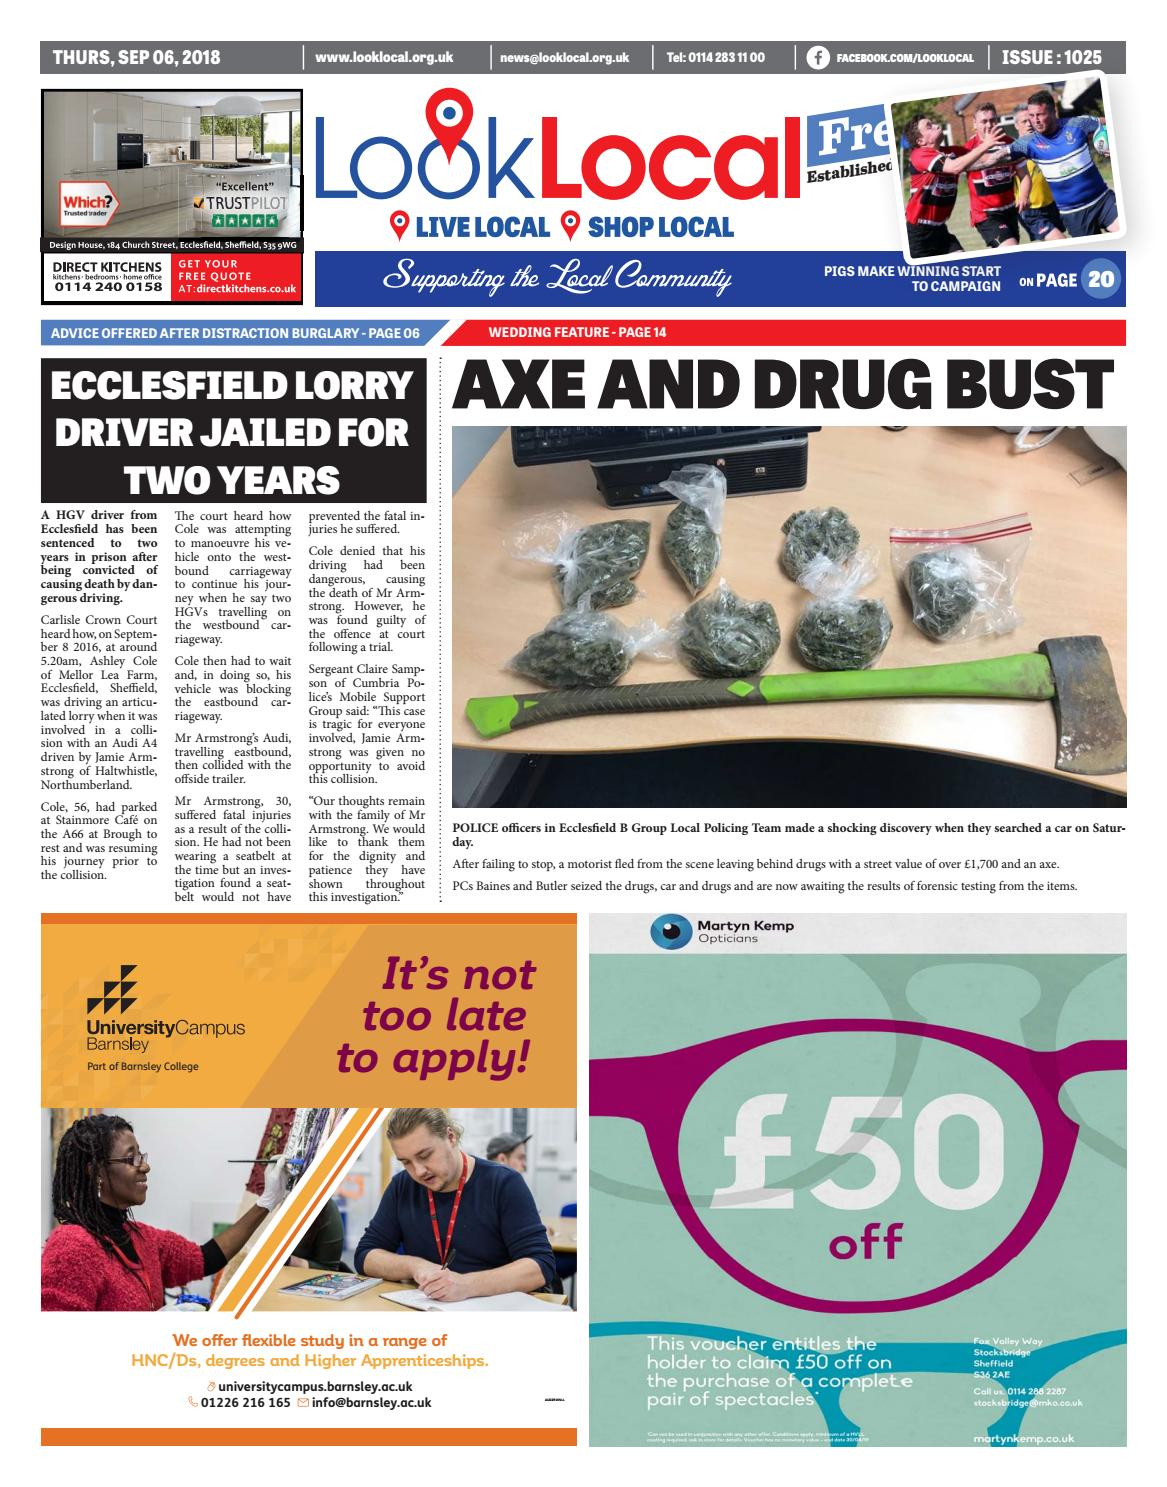 Issue 1025 Thursday 6 September 2018 By Look Local Newspaper Issuu Howreplaceblownfuse6427